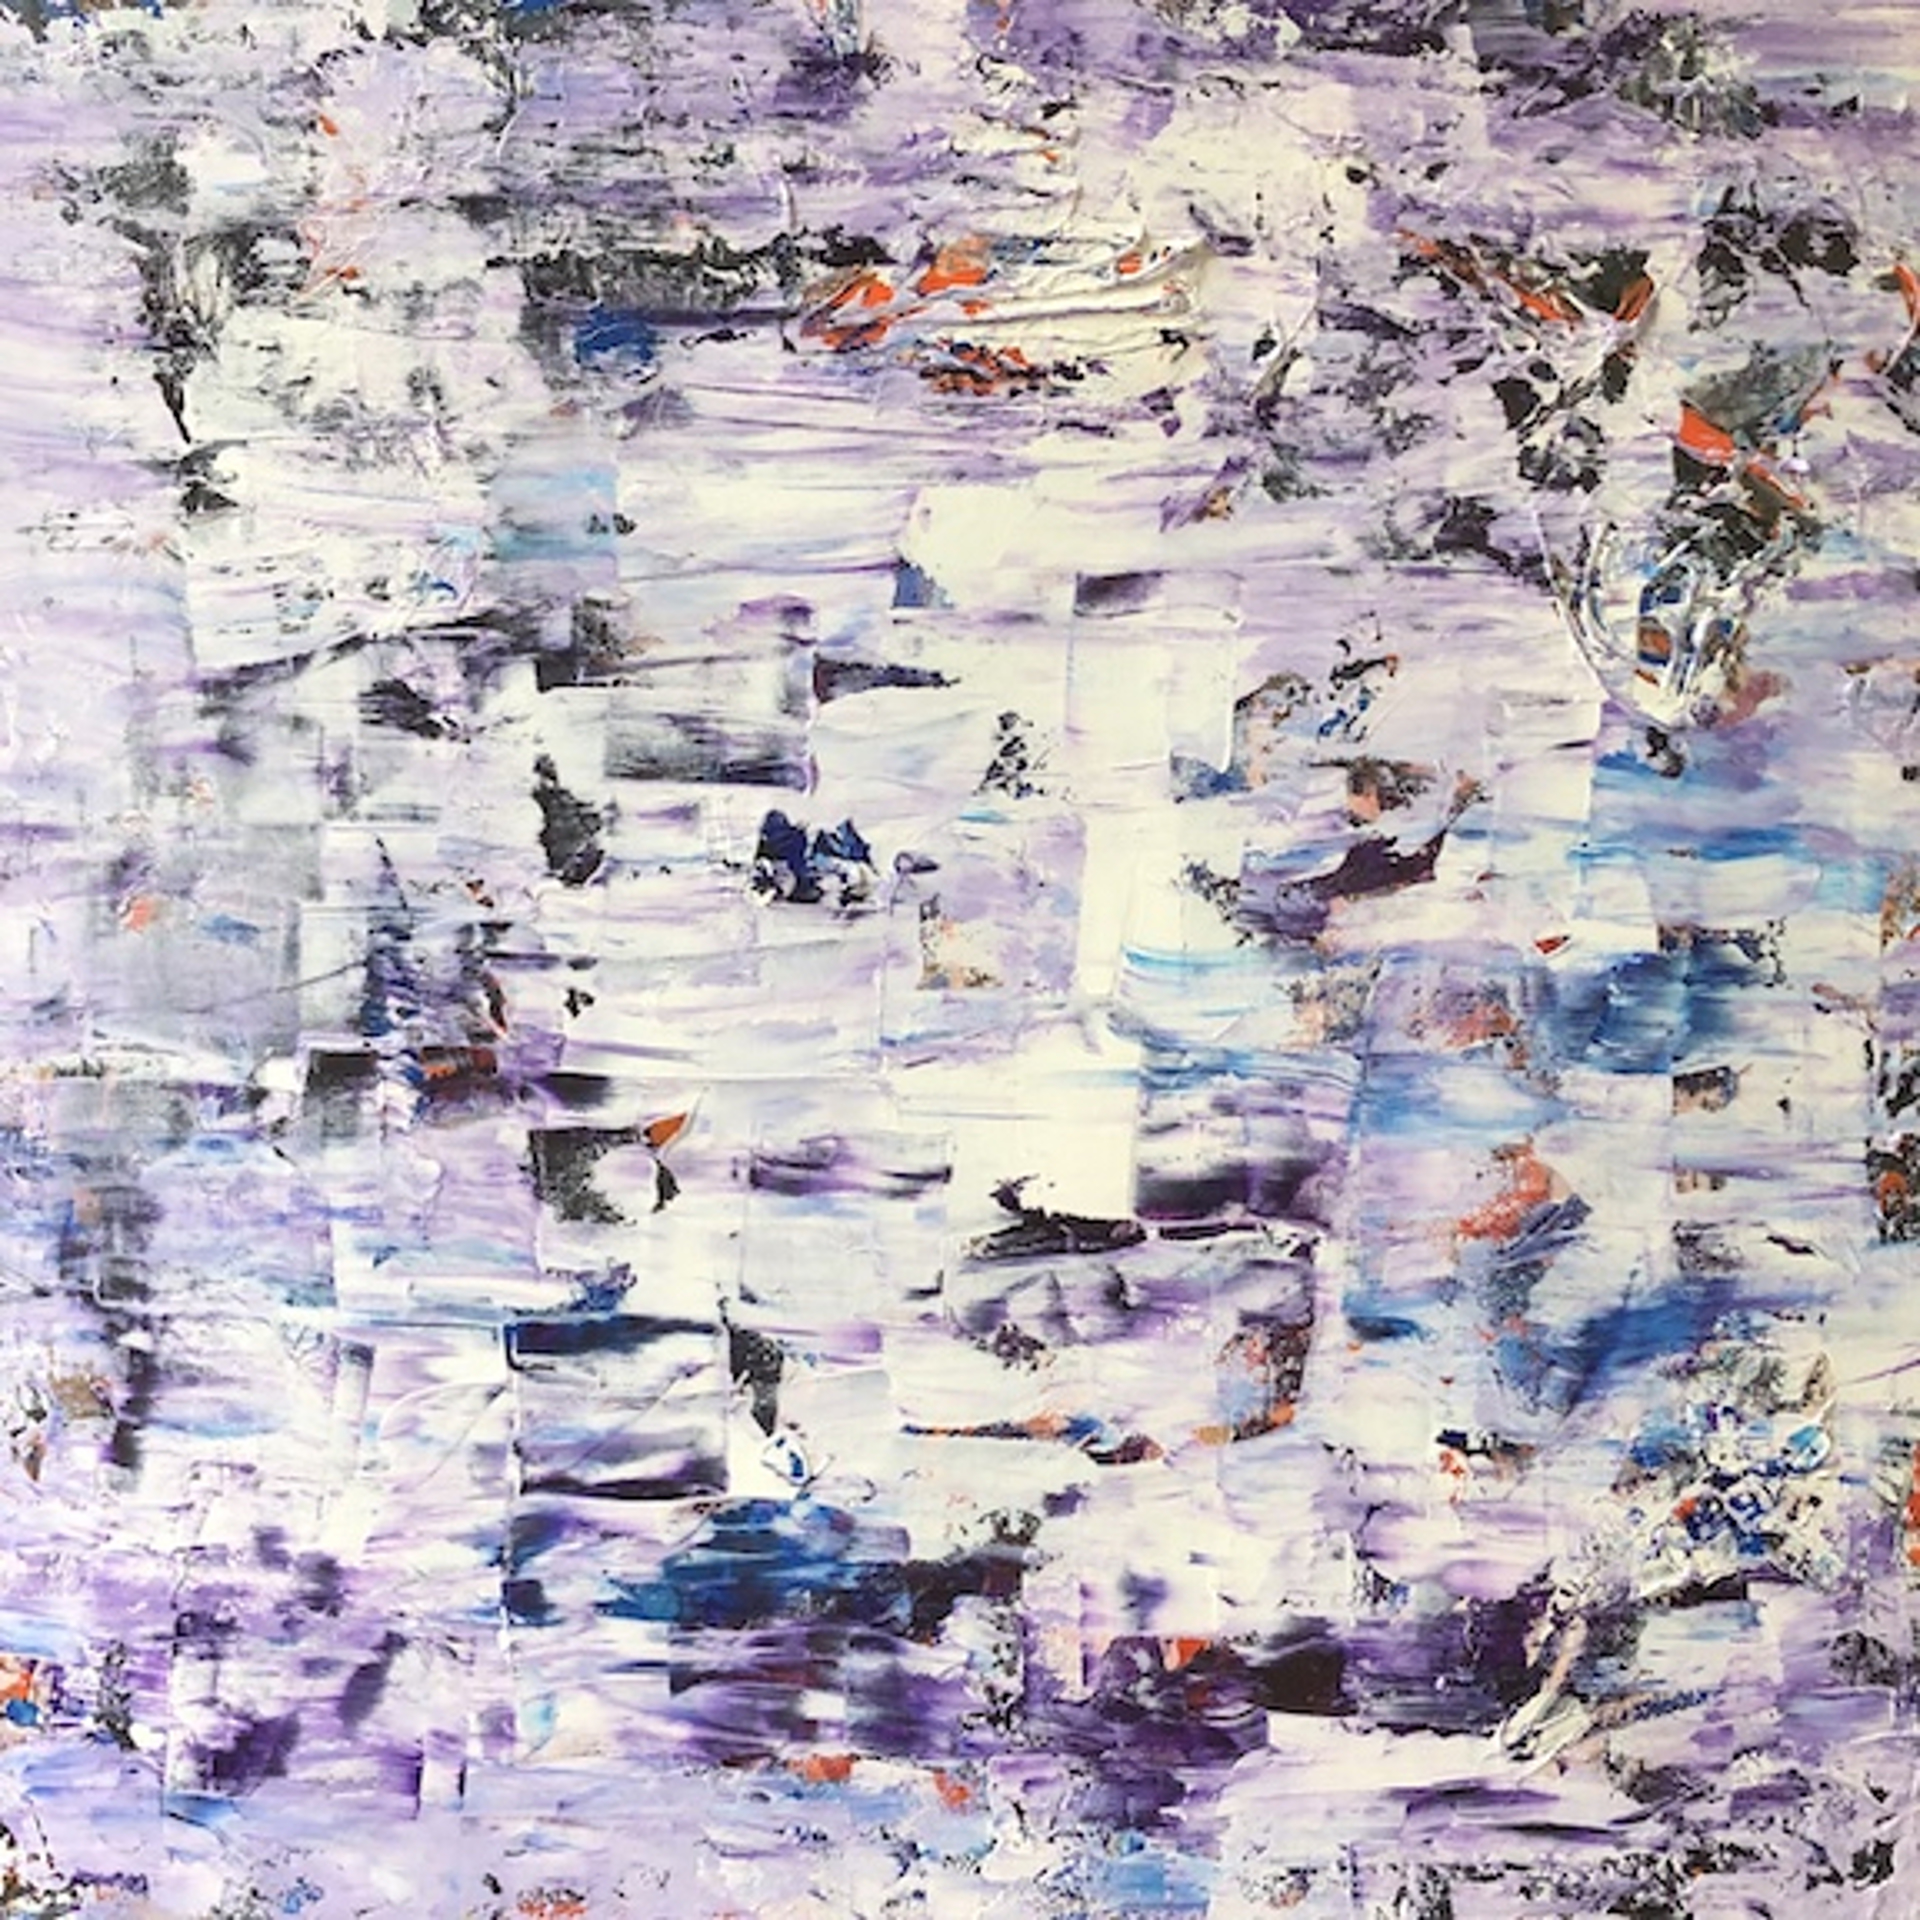 Abstract 9 by Kat O'Neill